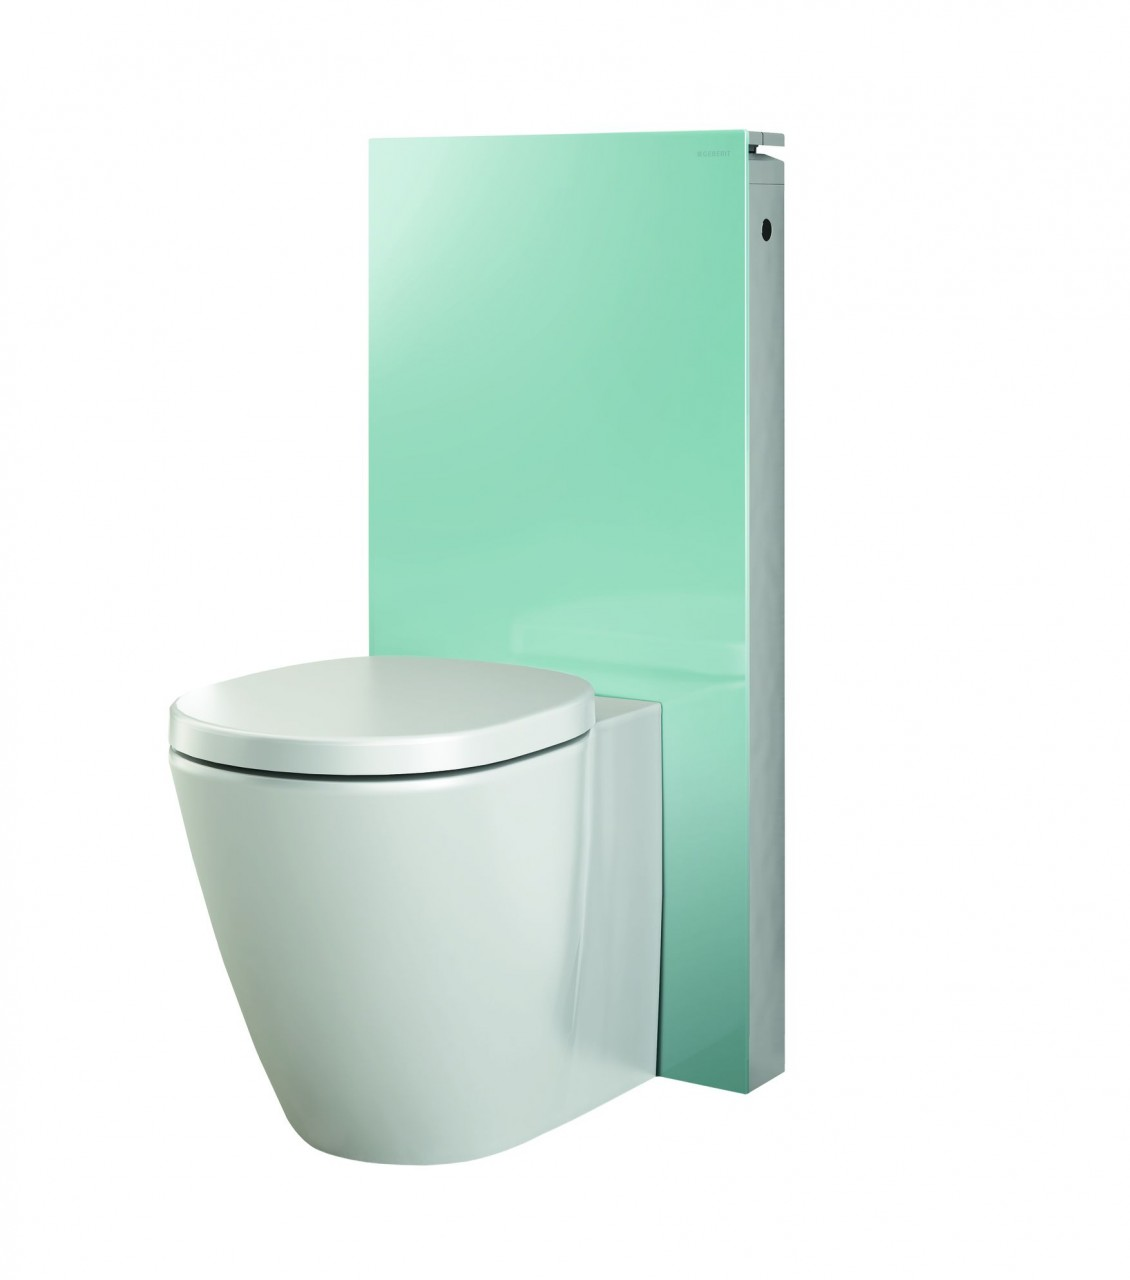 geberit monolith 101 for floor mounted wc mint glass ap. Black Bedroom Furniture Sets. Home Design Ideas